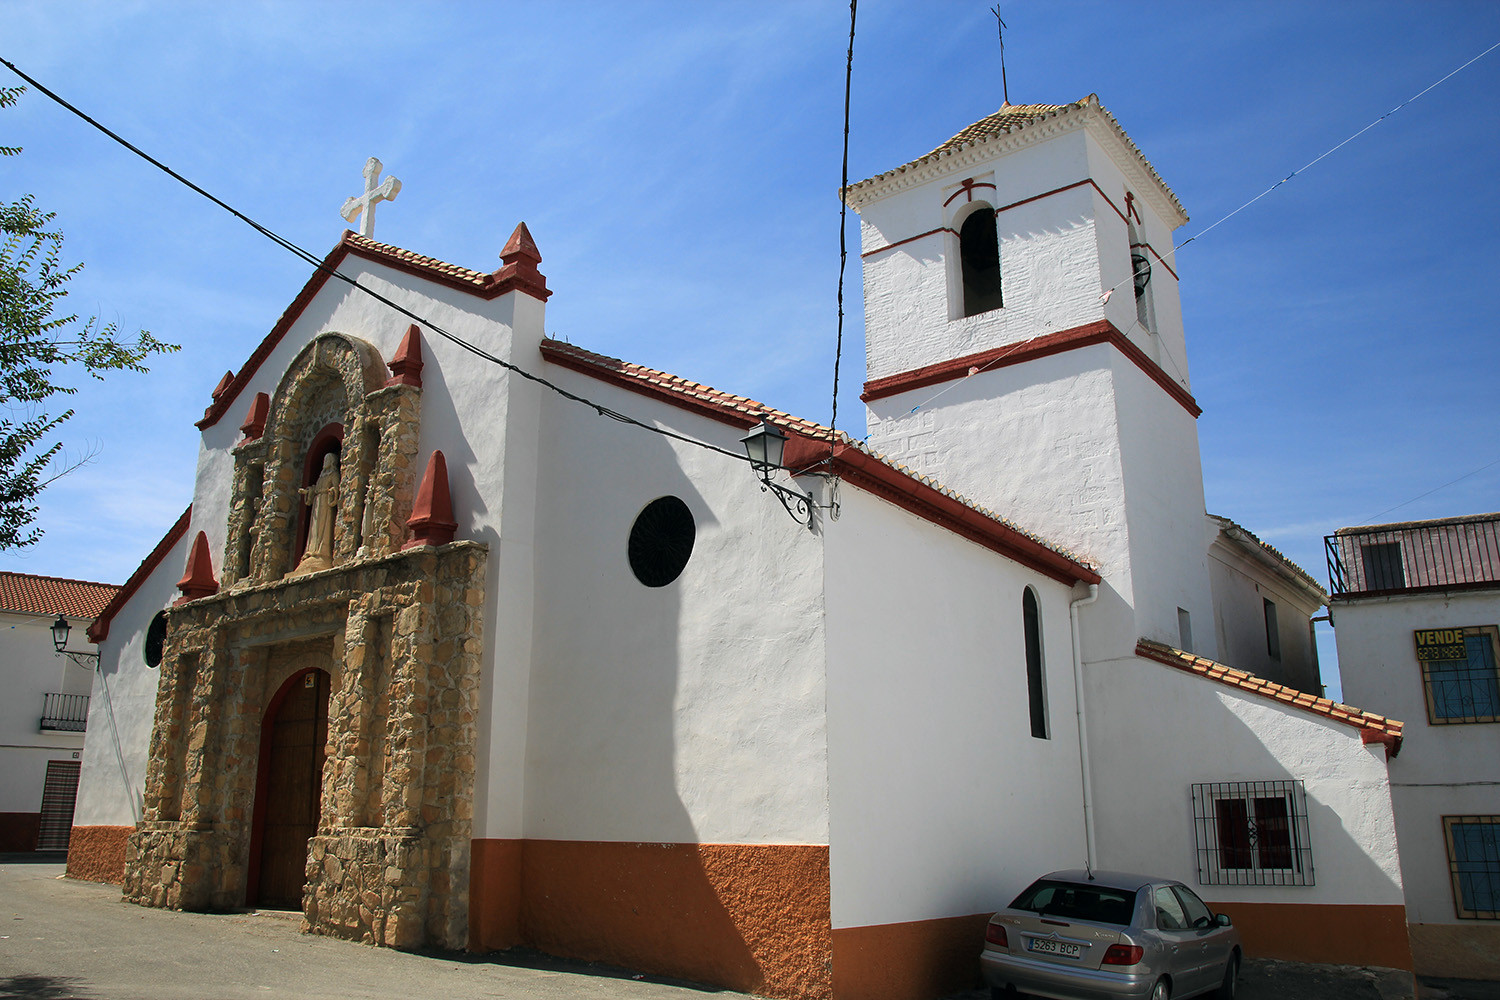 The Church of Dehasa Viejas